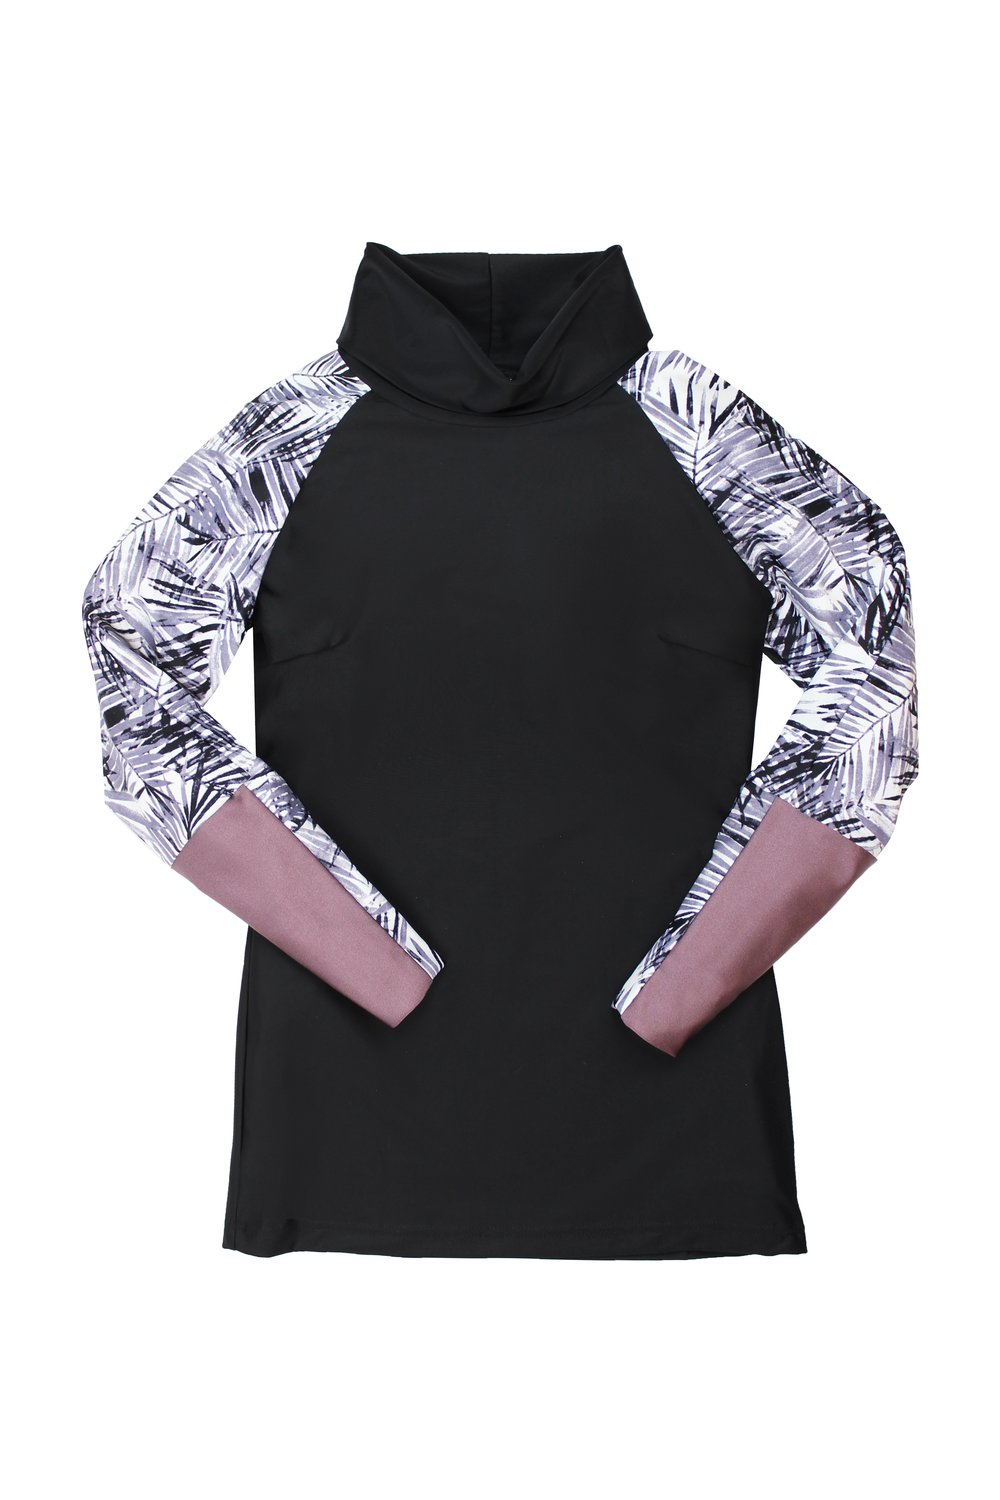 iaera surf  | The Mazu Rash Guard in Black Palm |  $98.00